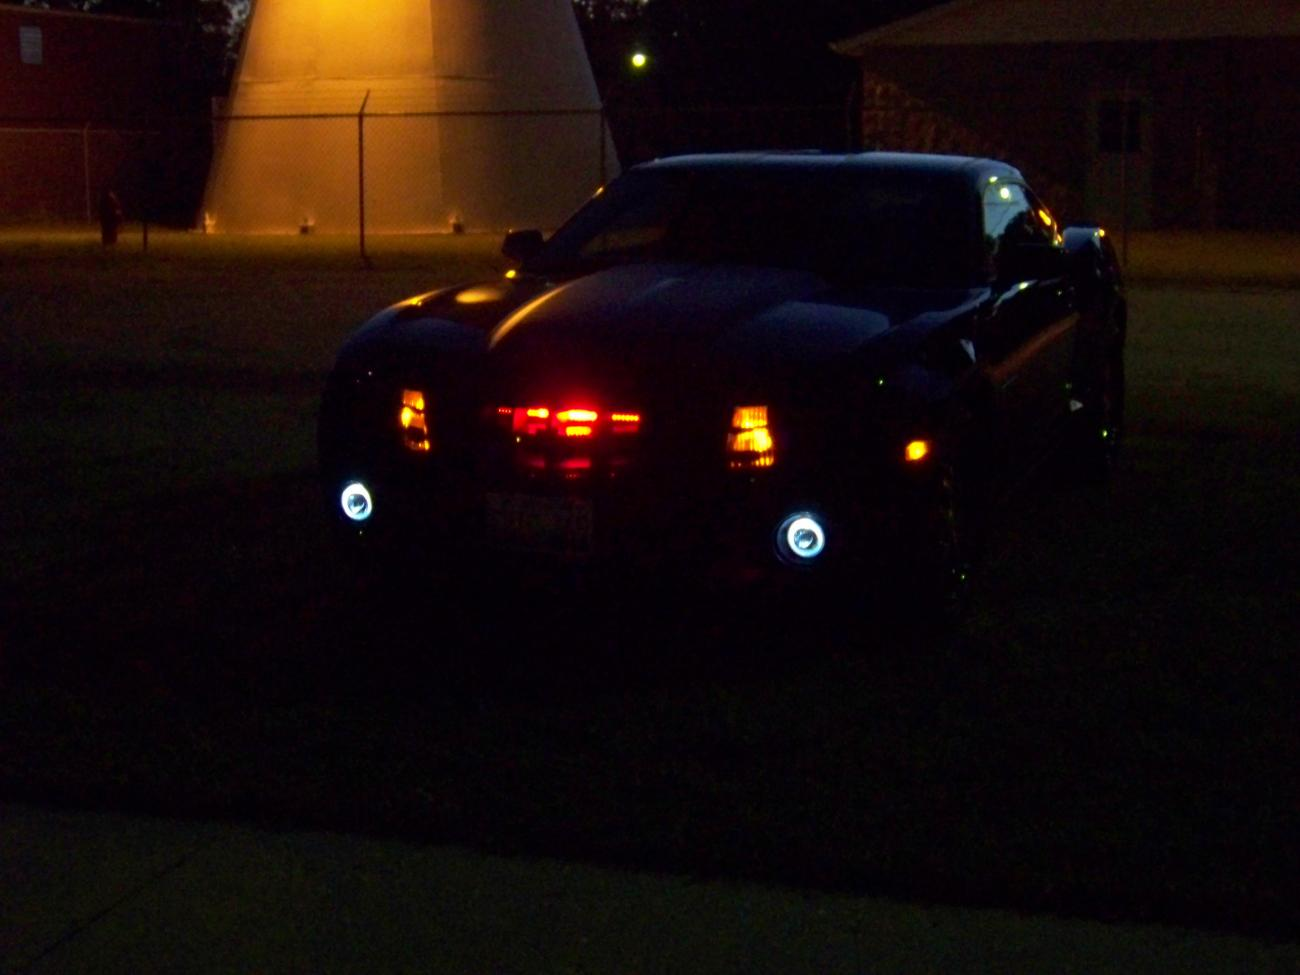 camaro ls night shots aftermarket halo fogs and knight. Black Bedroom Furniture Sets. Home Design Ideas